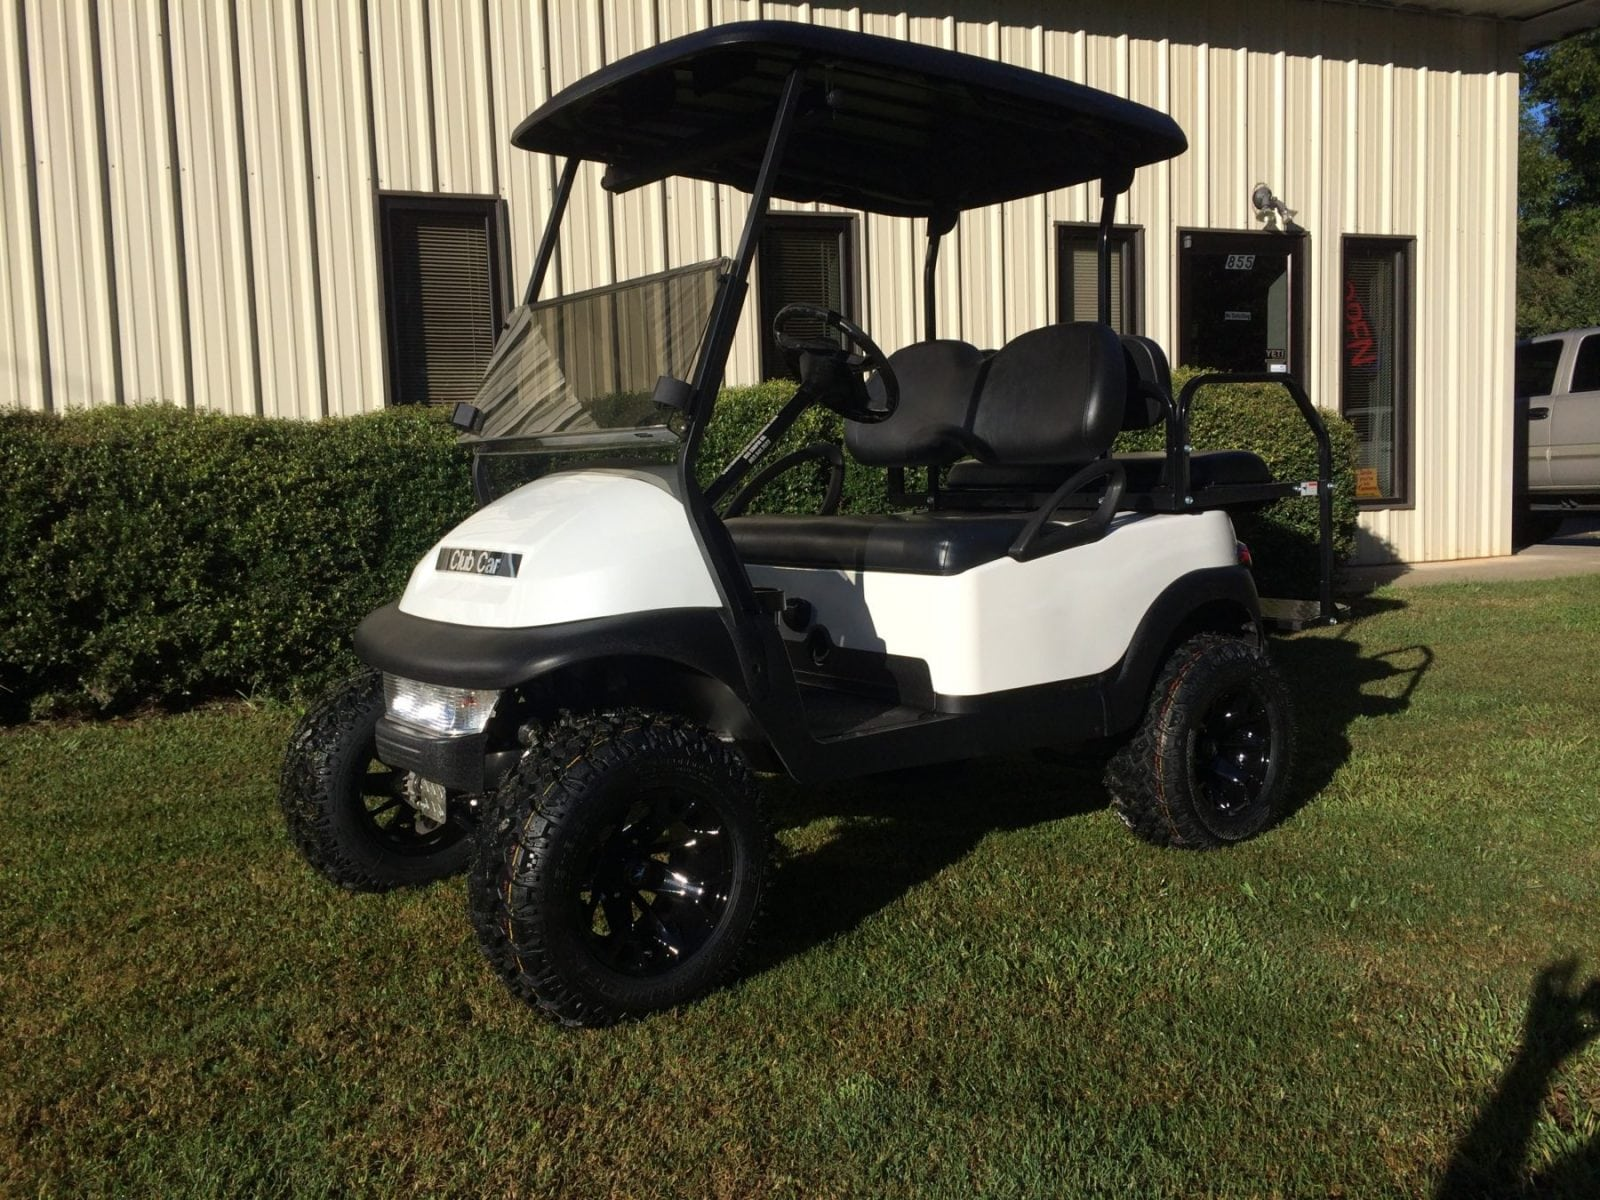 Build Your Own Golf Cart Kit >> White Club Car Precedent - Custom Golf Carts Columbia | Sales, Services & Parts